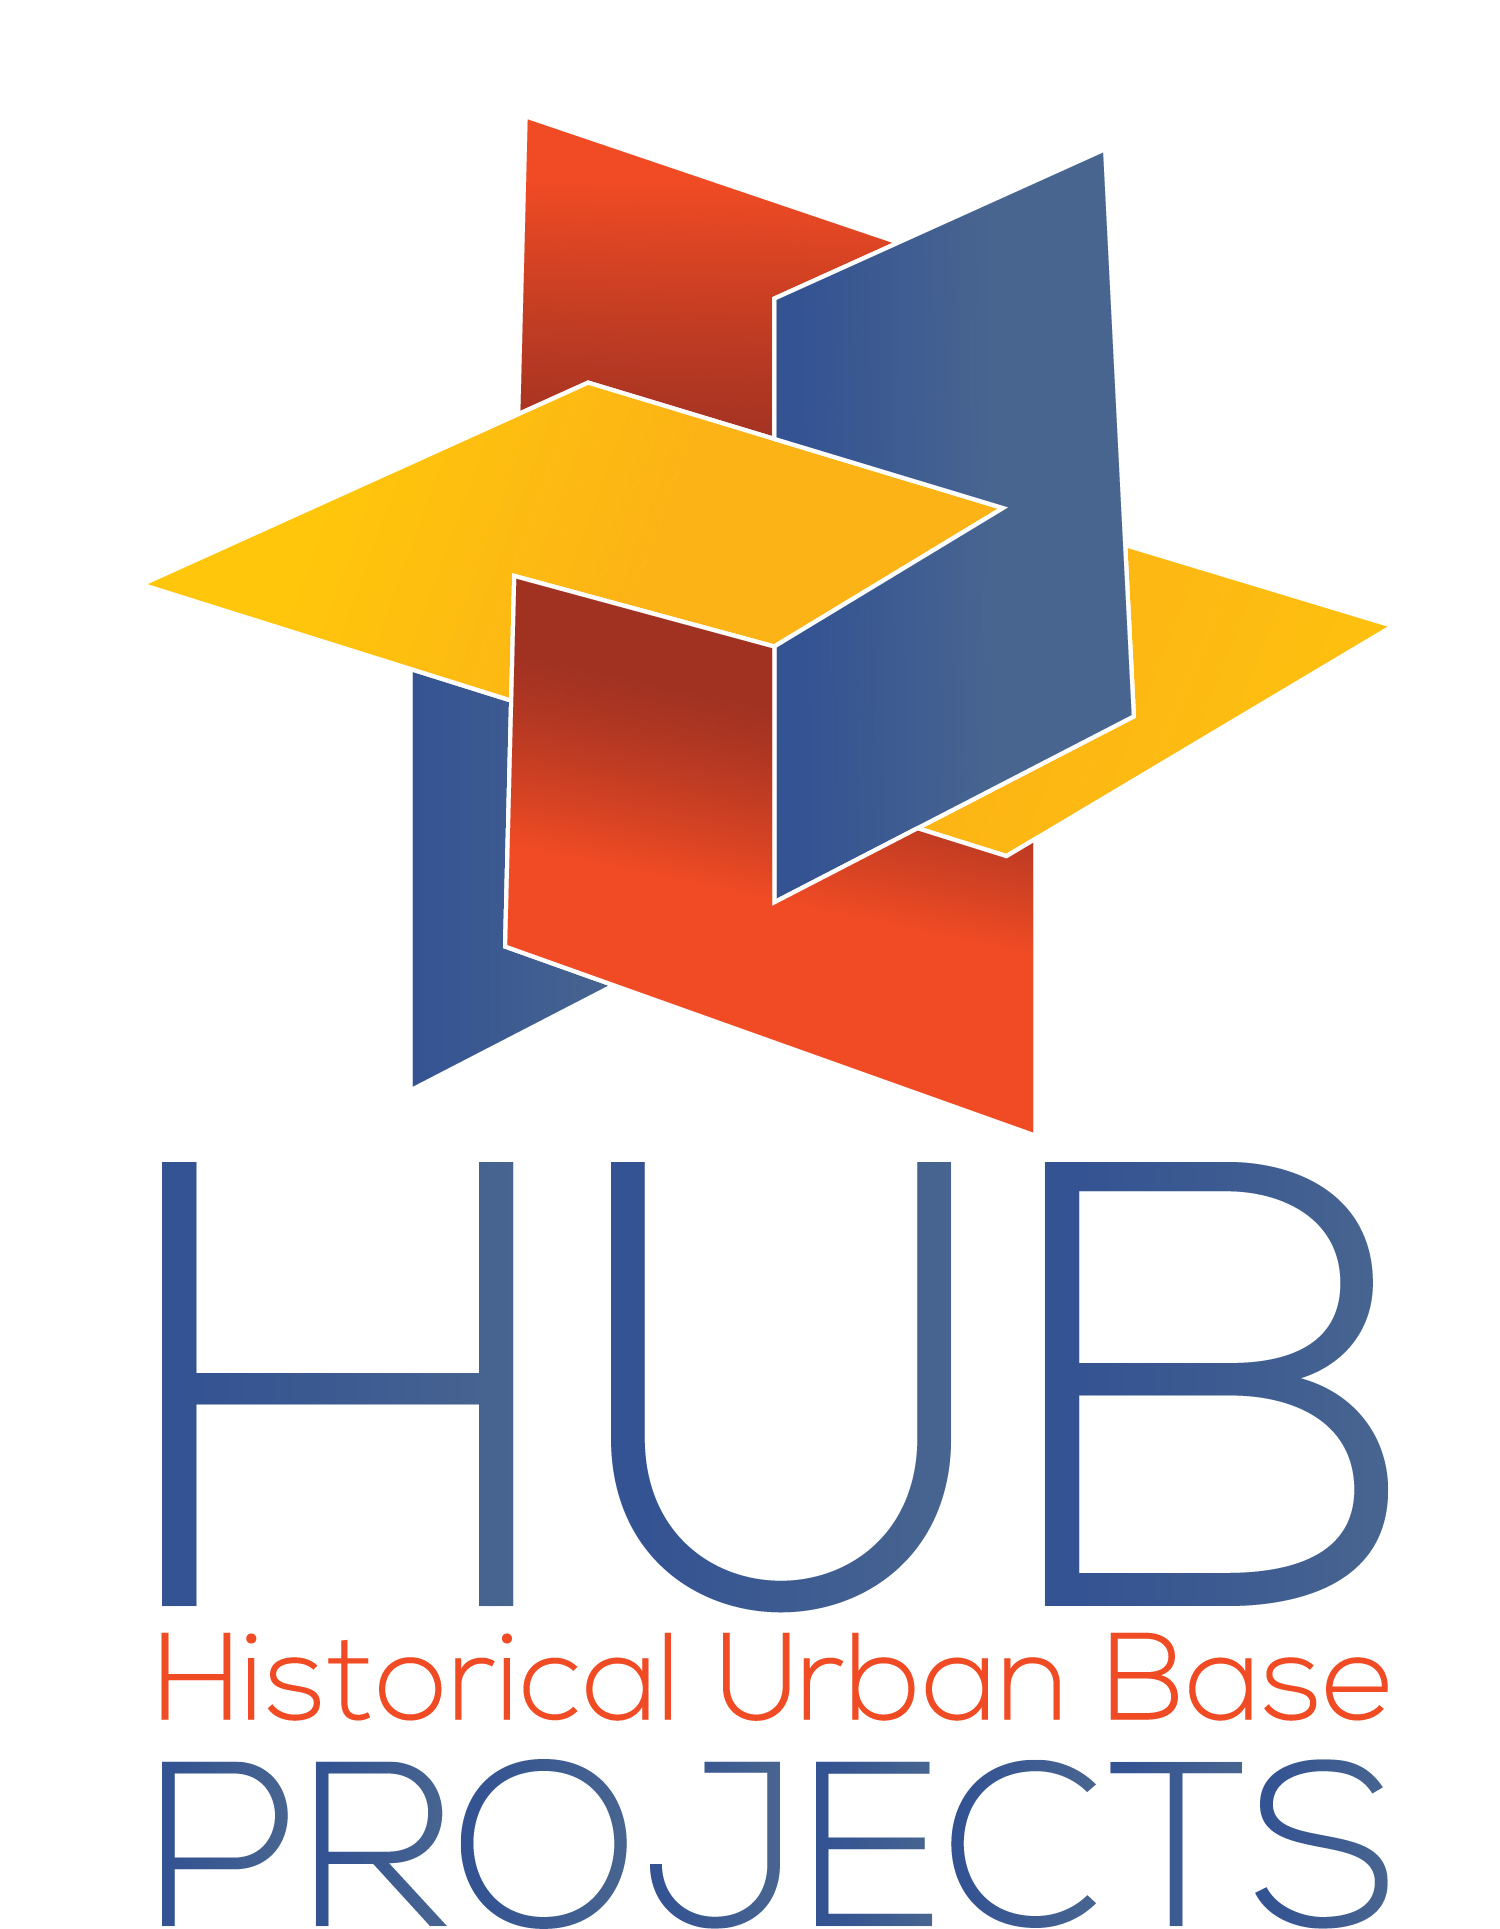 HUBprojects logo, color, JPEG